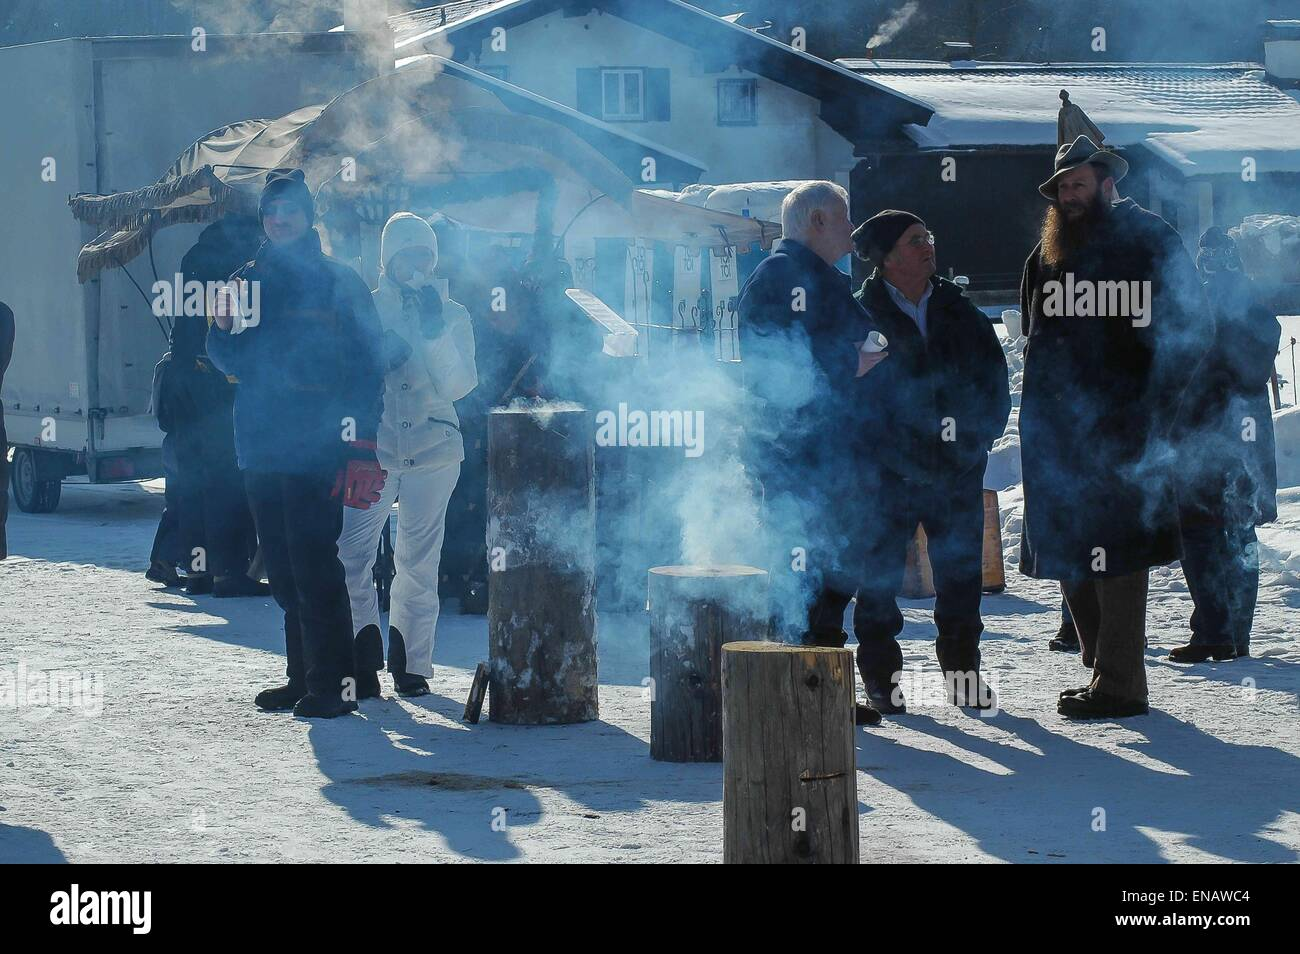 One of the great attractions in winter at Rottach-Egern - the horse-drawn sleigh race! spectators gathering round - Stock Image